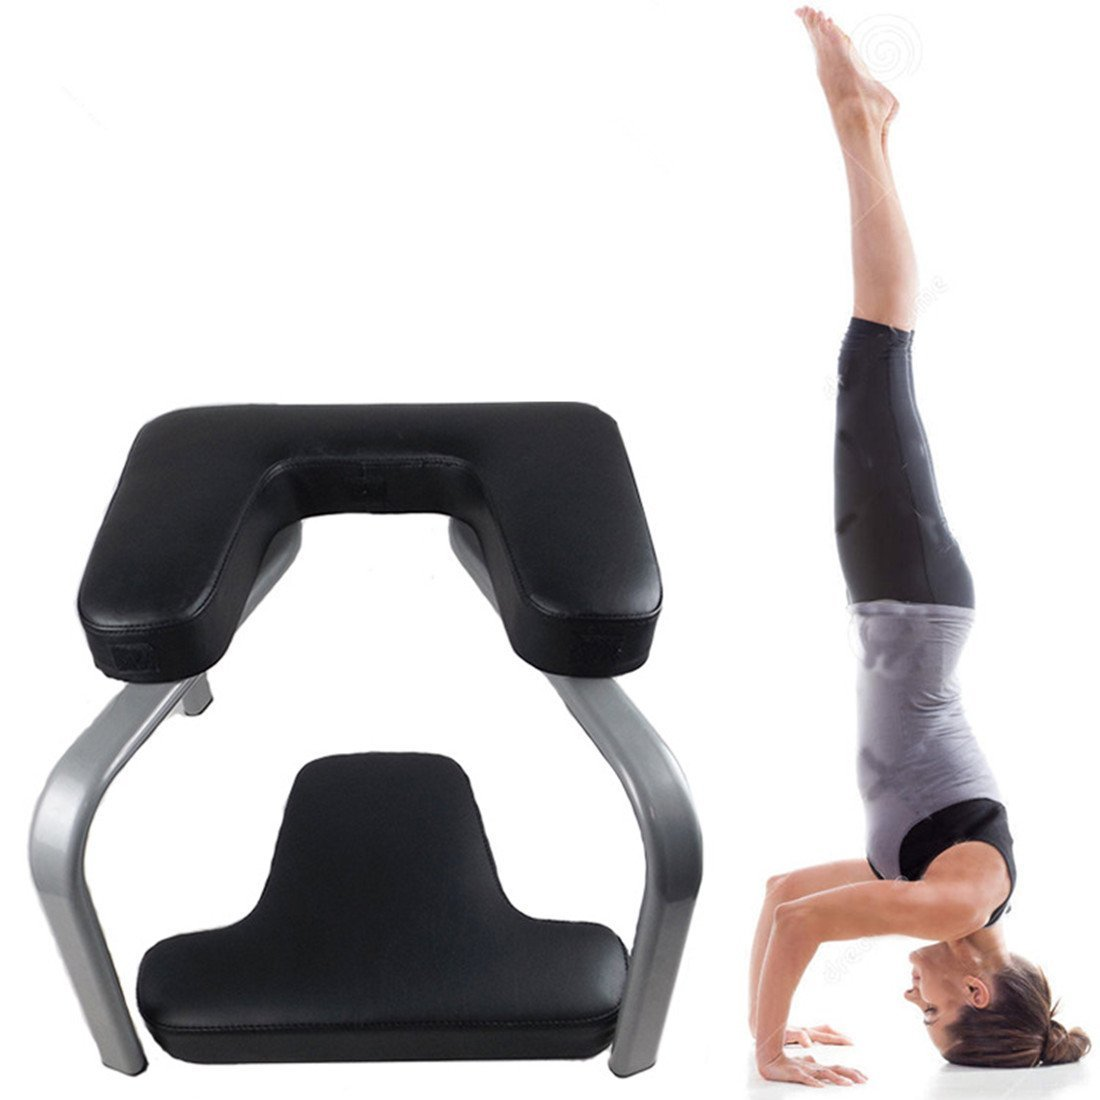 Ranbo yoga headstand exercise bench/body lift inverted training/fitness chair and Inversion workout the balanced body headstand bench … by Ranbo (Image #1)